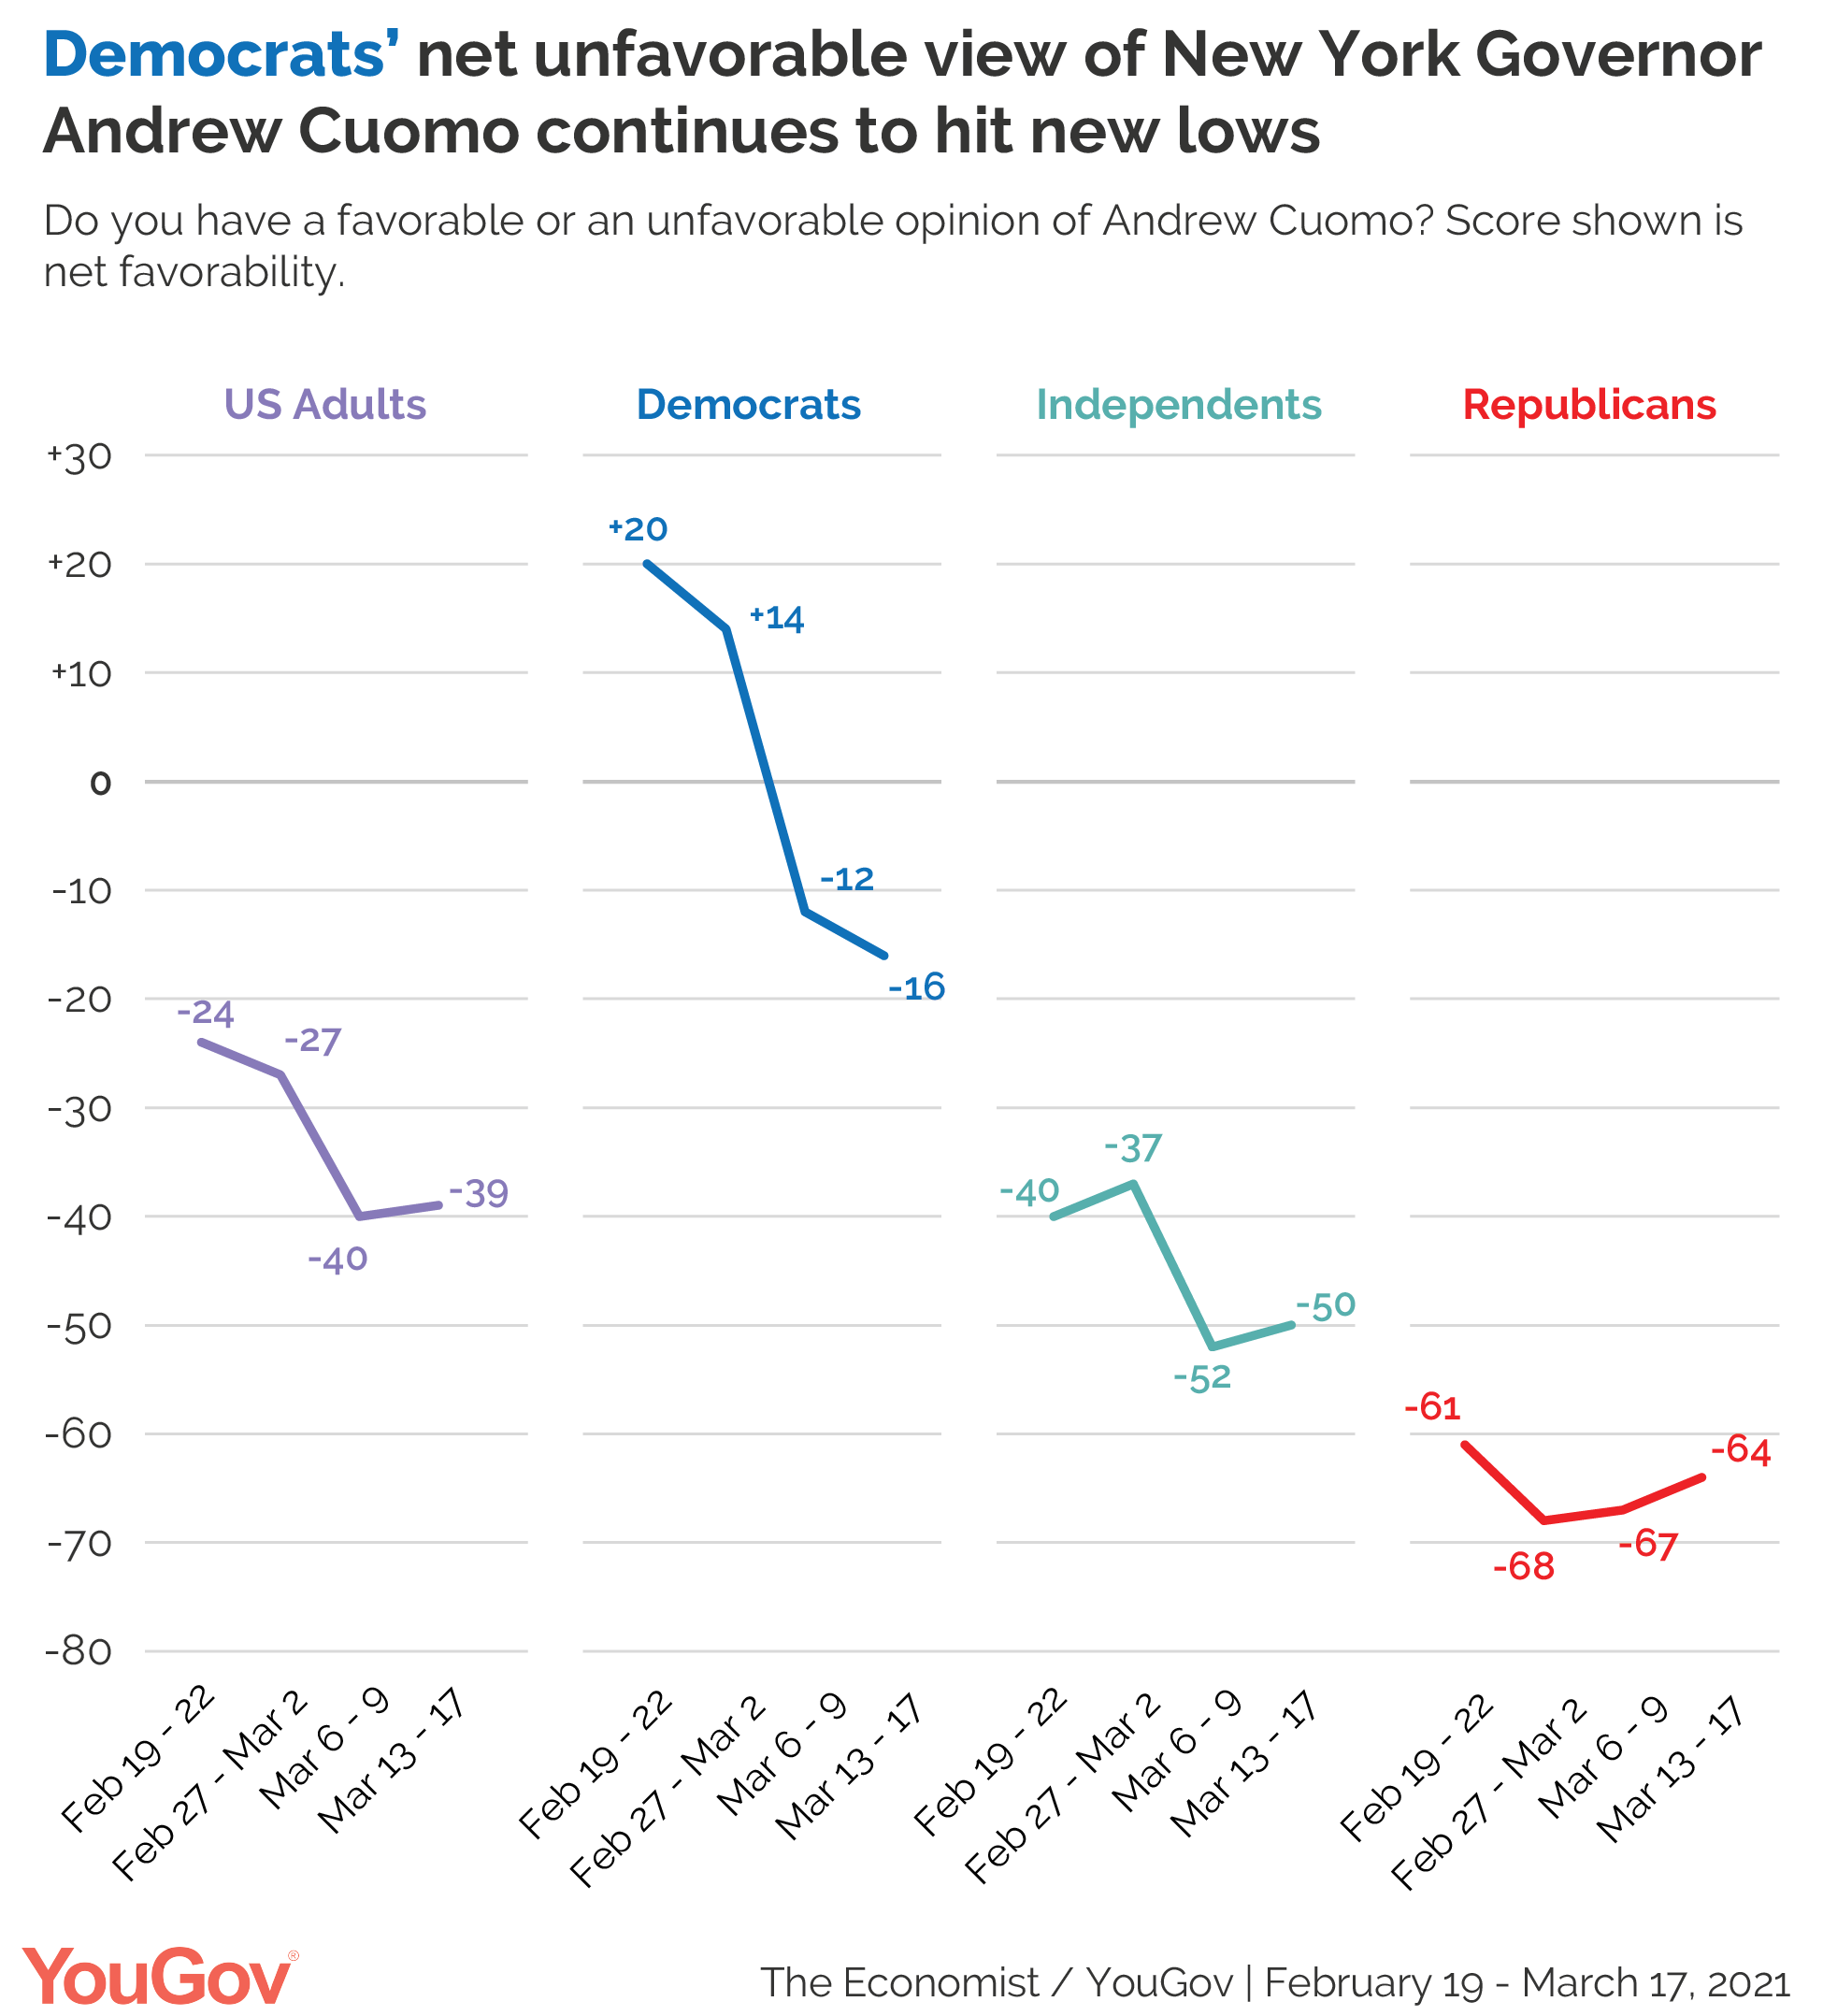 Democrats' net favorability of Governor Andrew Cuomo continues to decline